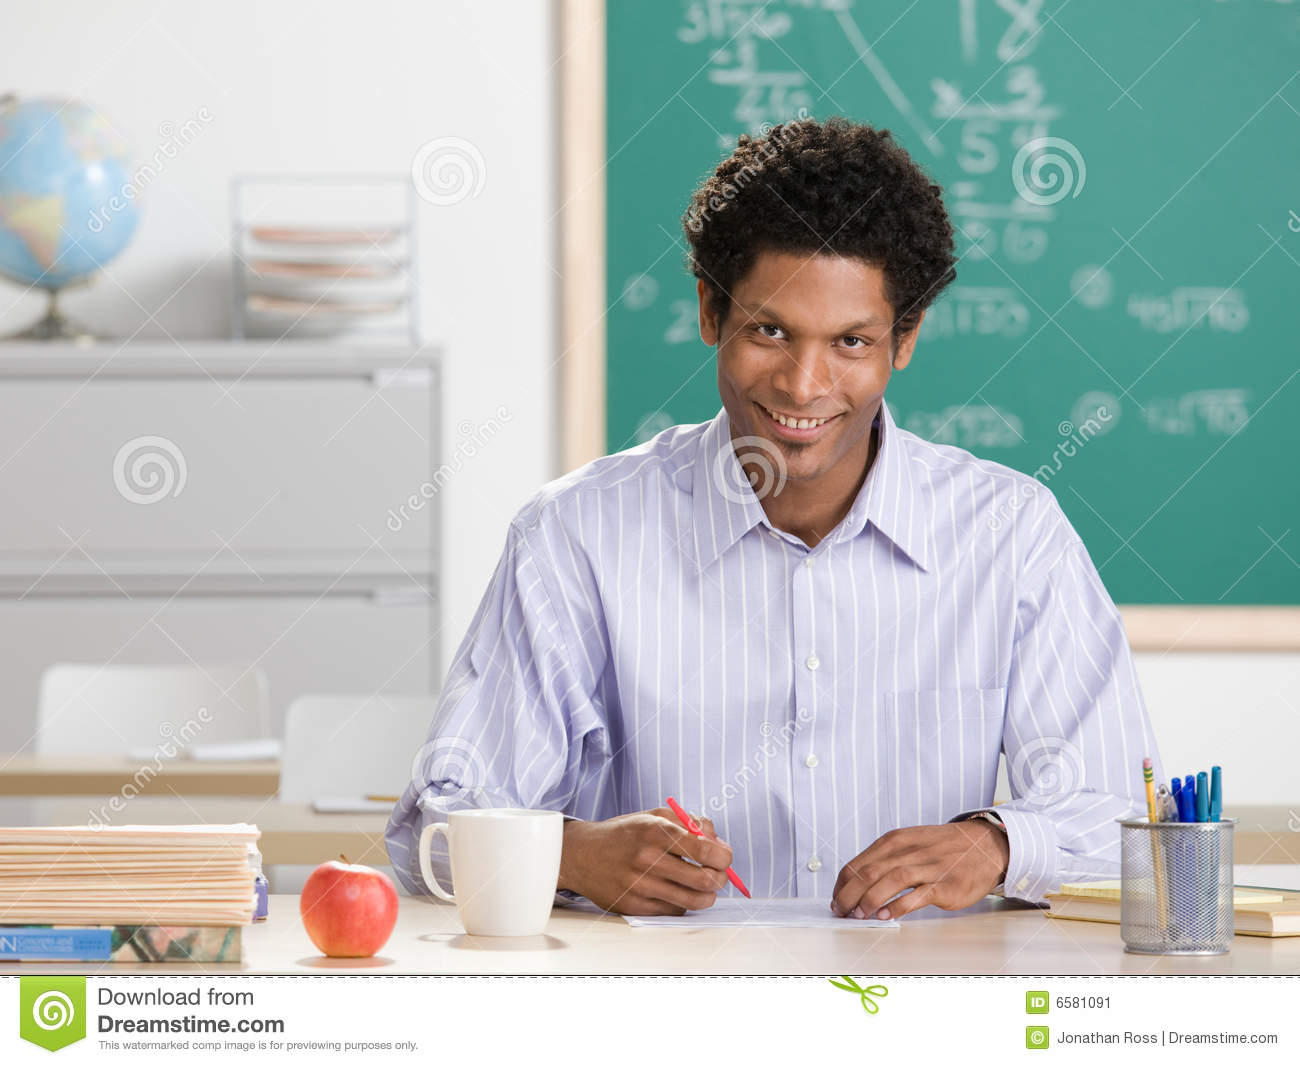 Essay grading service for teachers